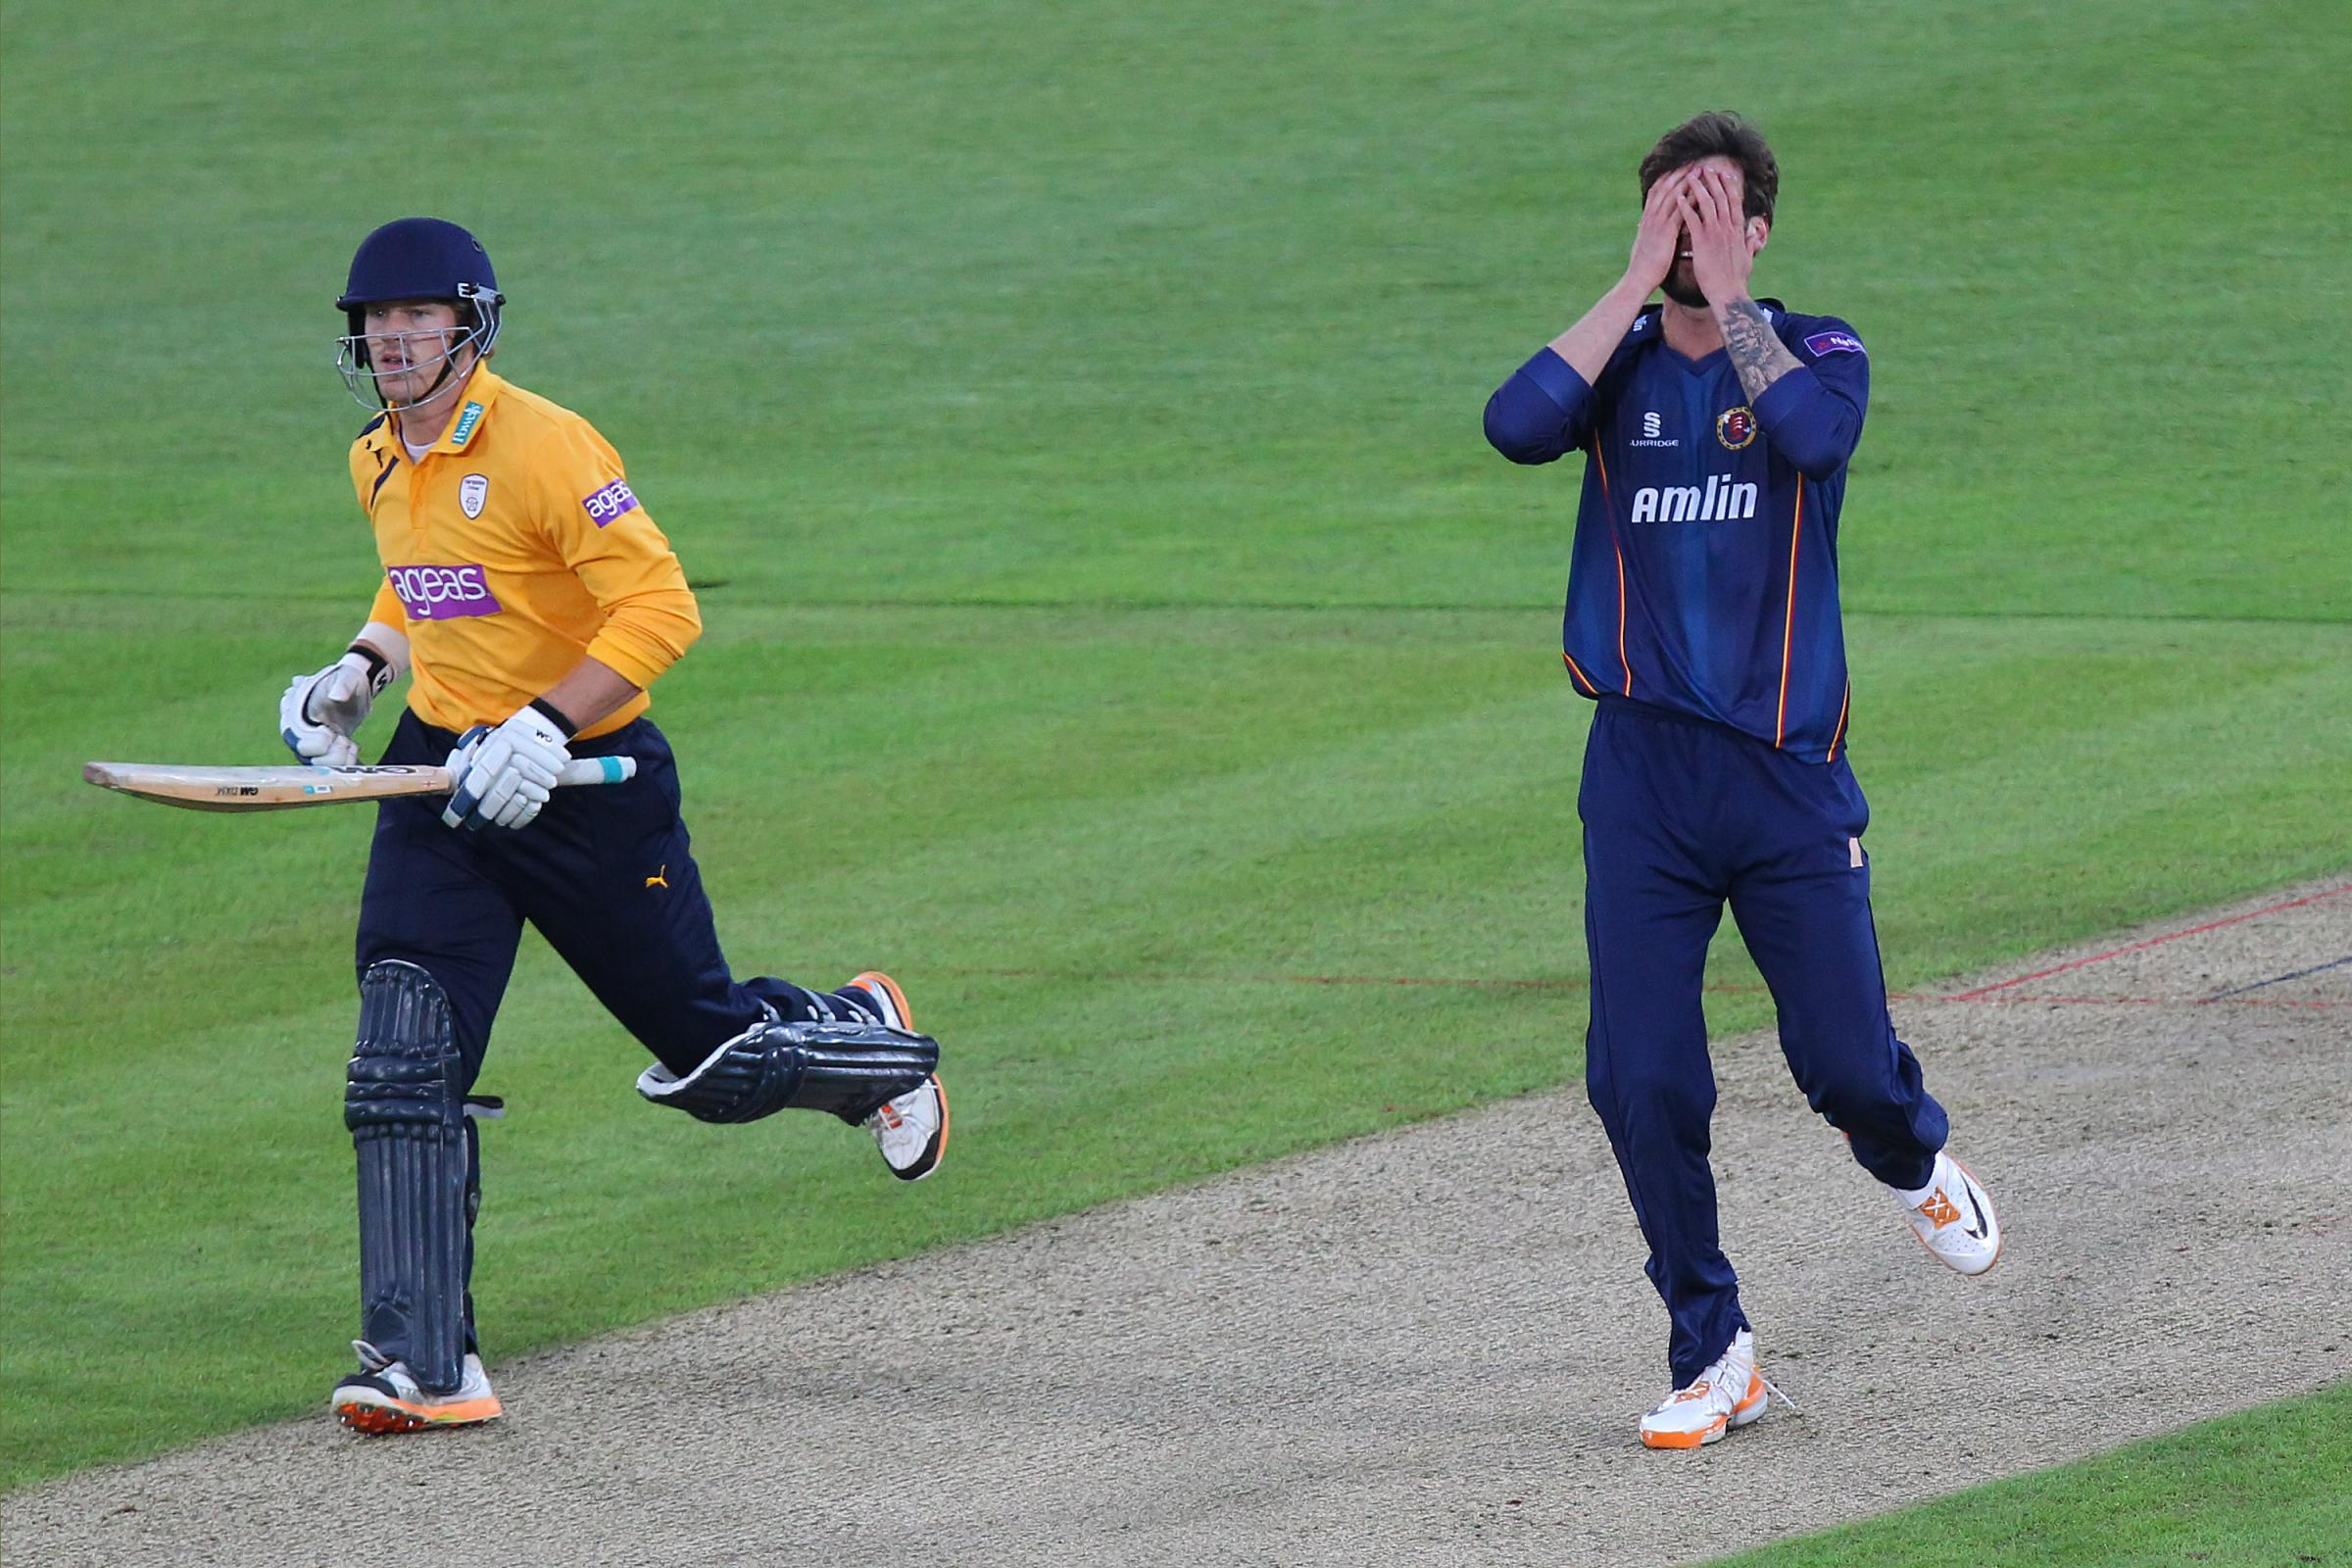 Essex bowler Reece Topley shows his frustration PICS GAVIN ELLIS/TGS PHOTOS